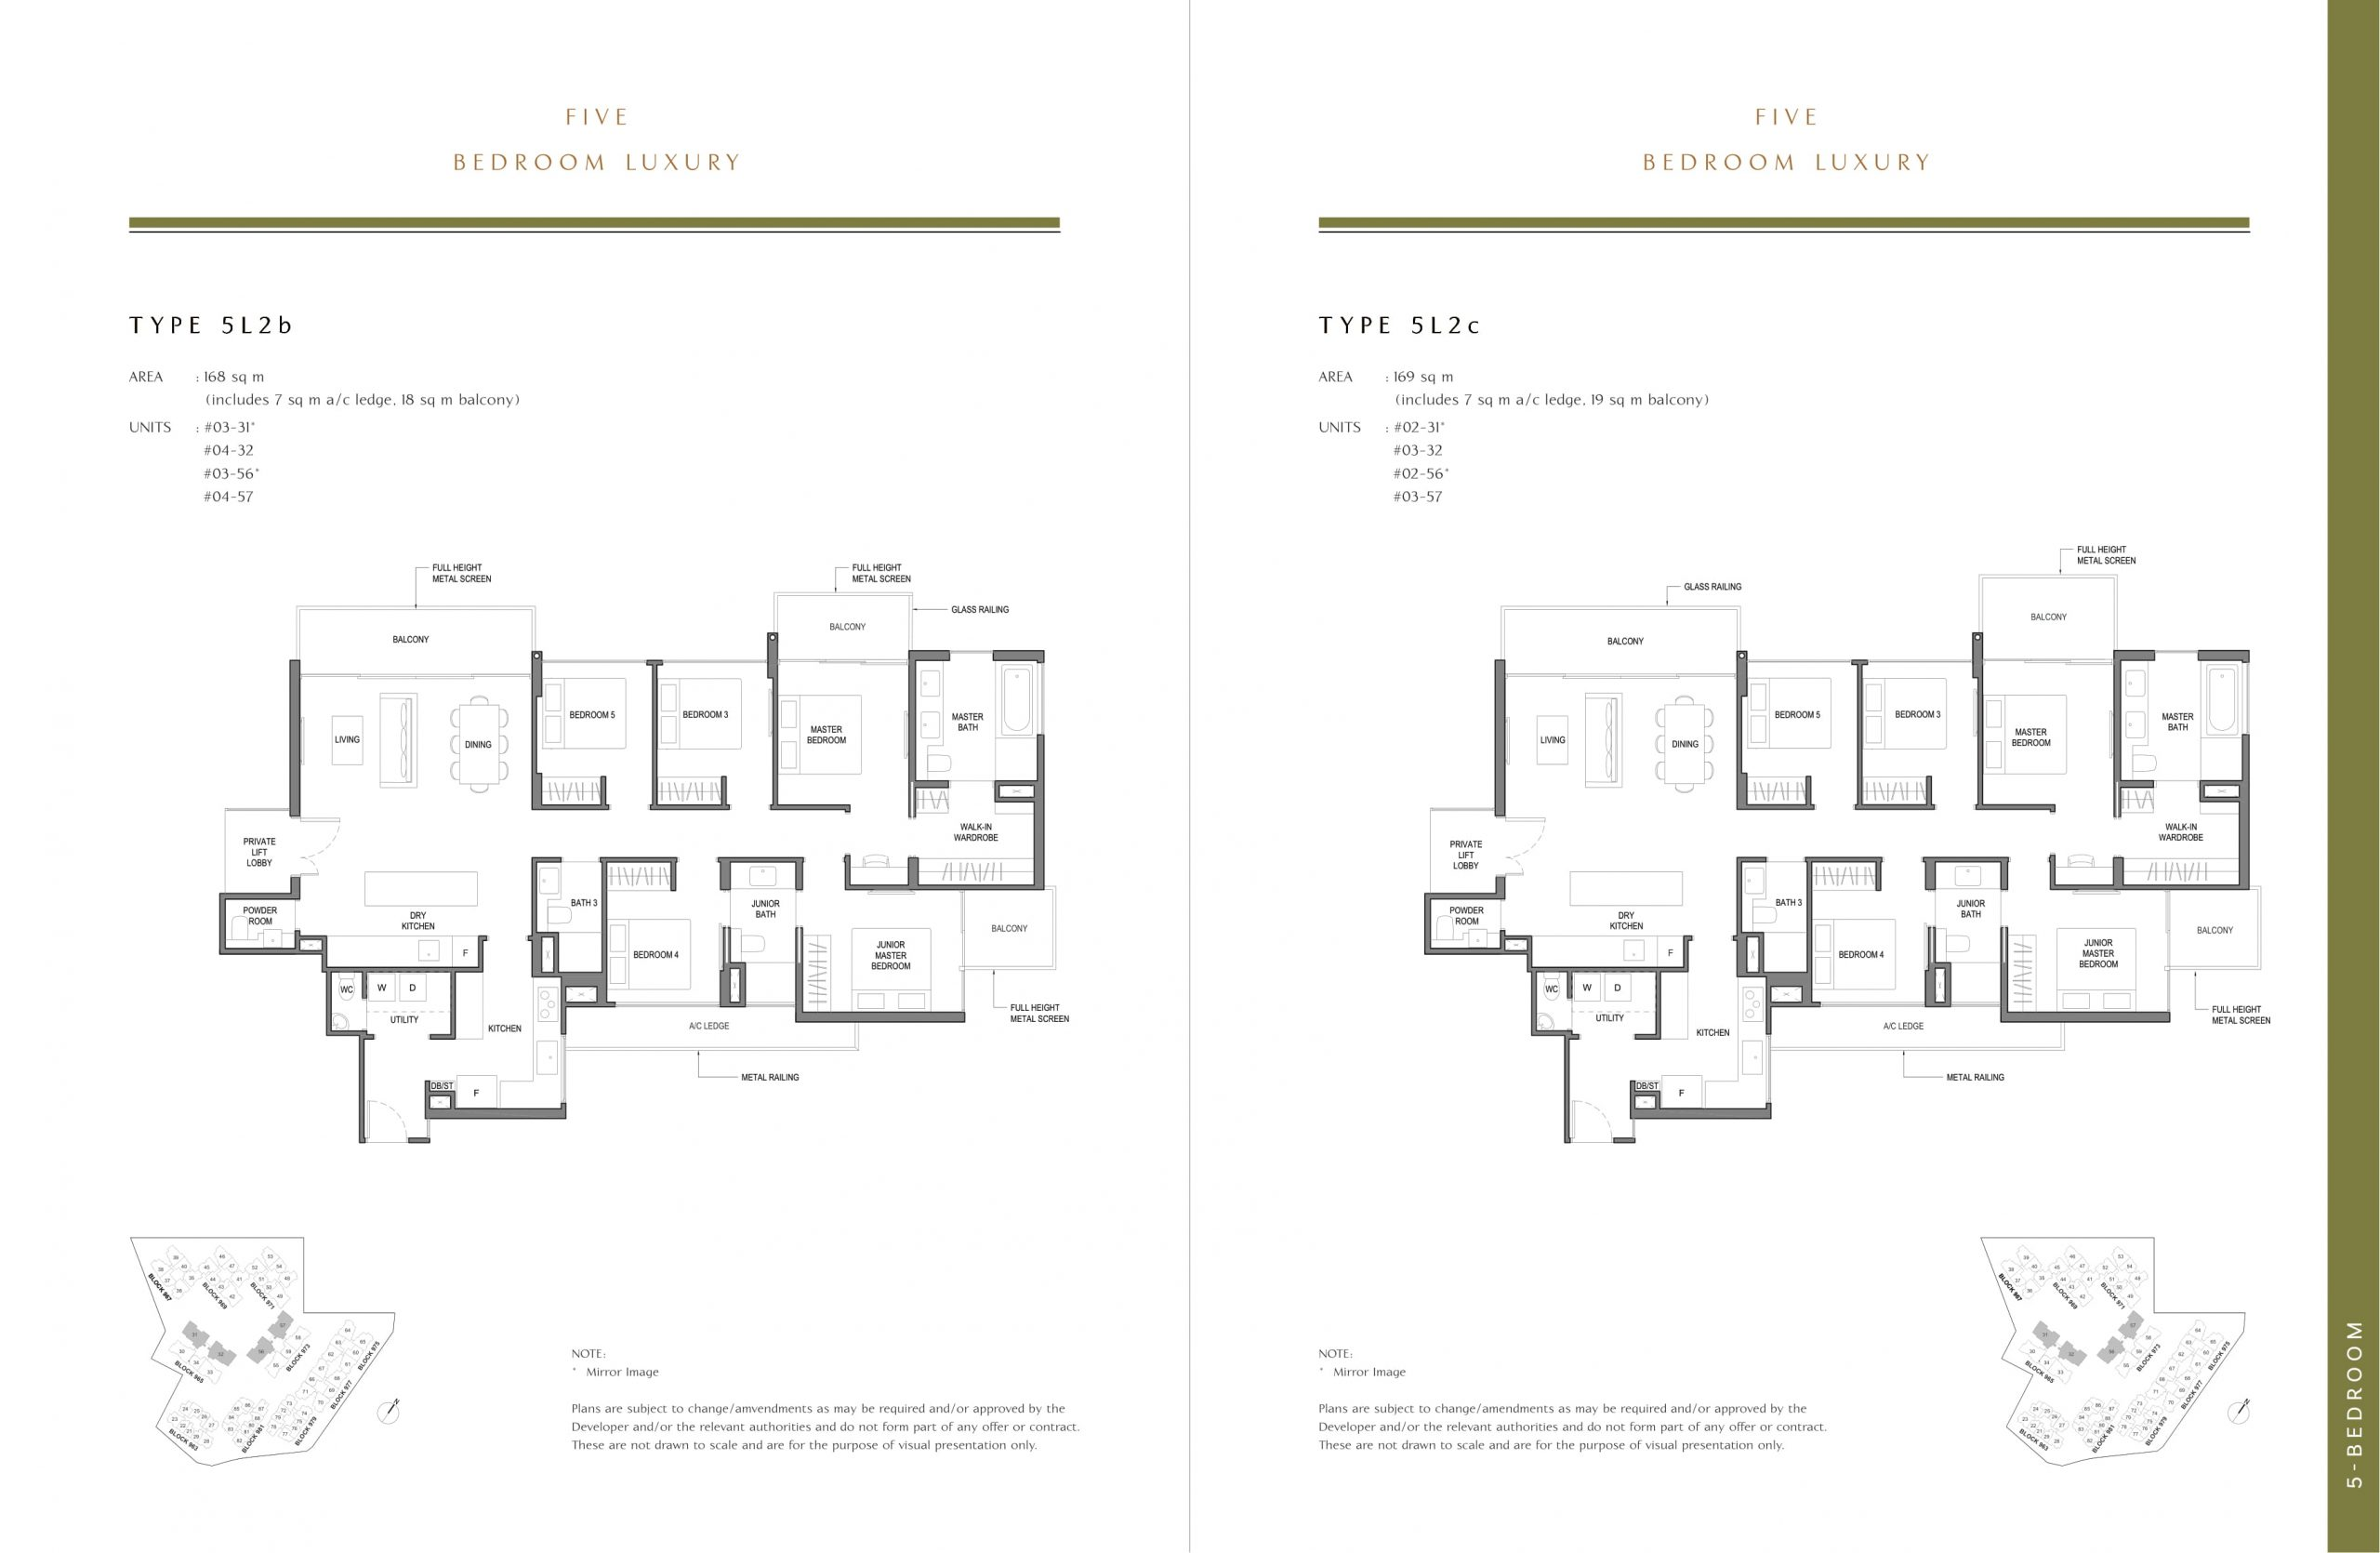 Parc Komo's five-bedroom luxury types